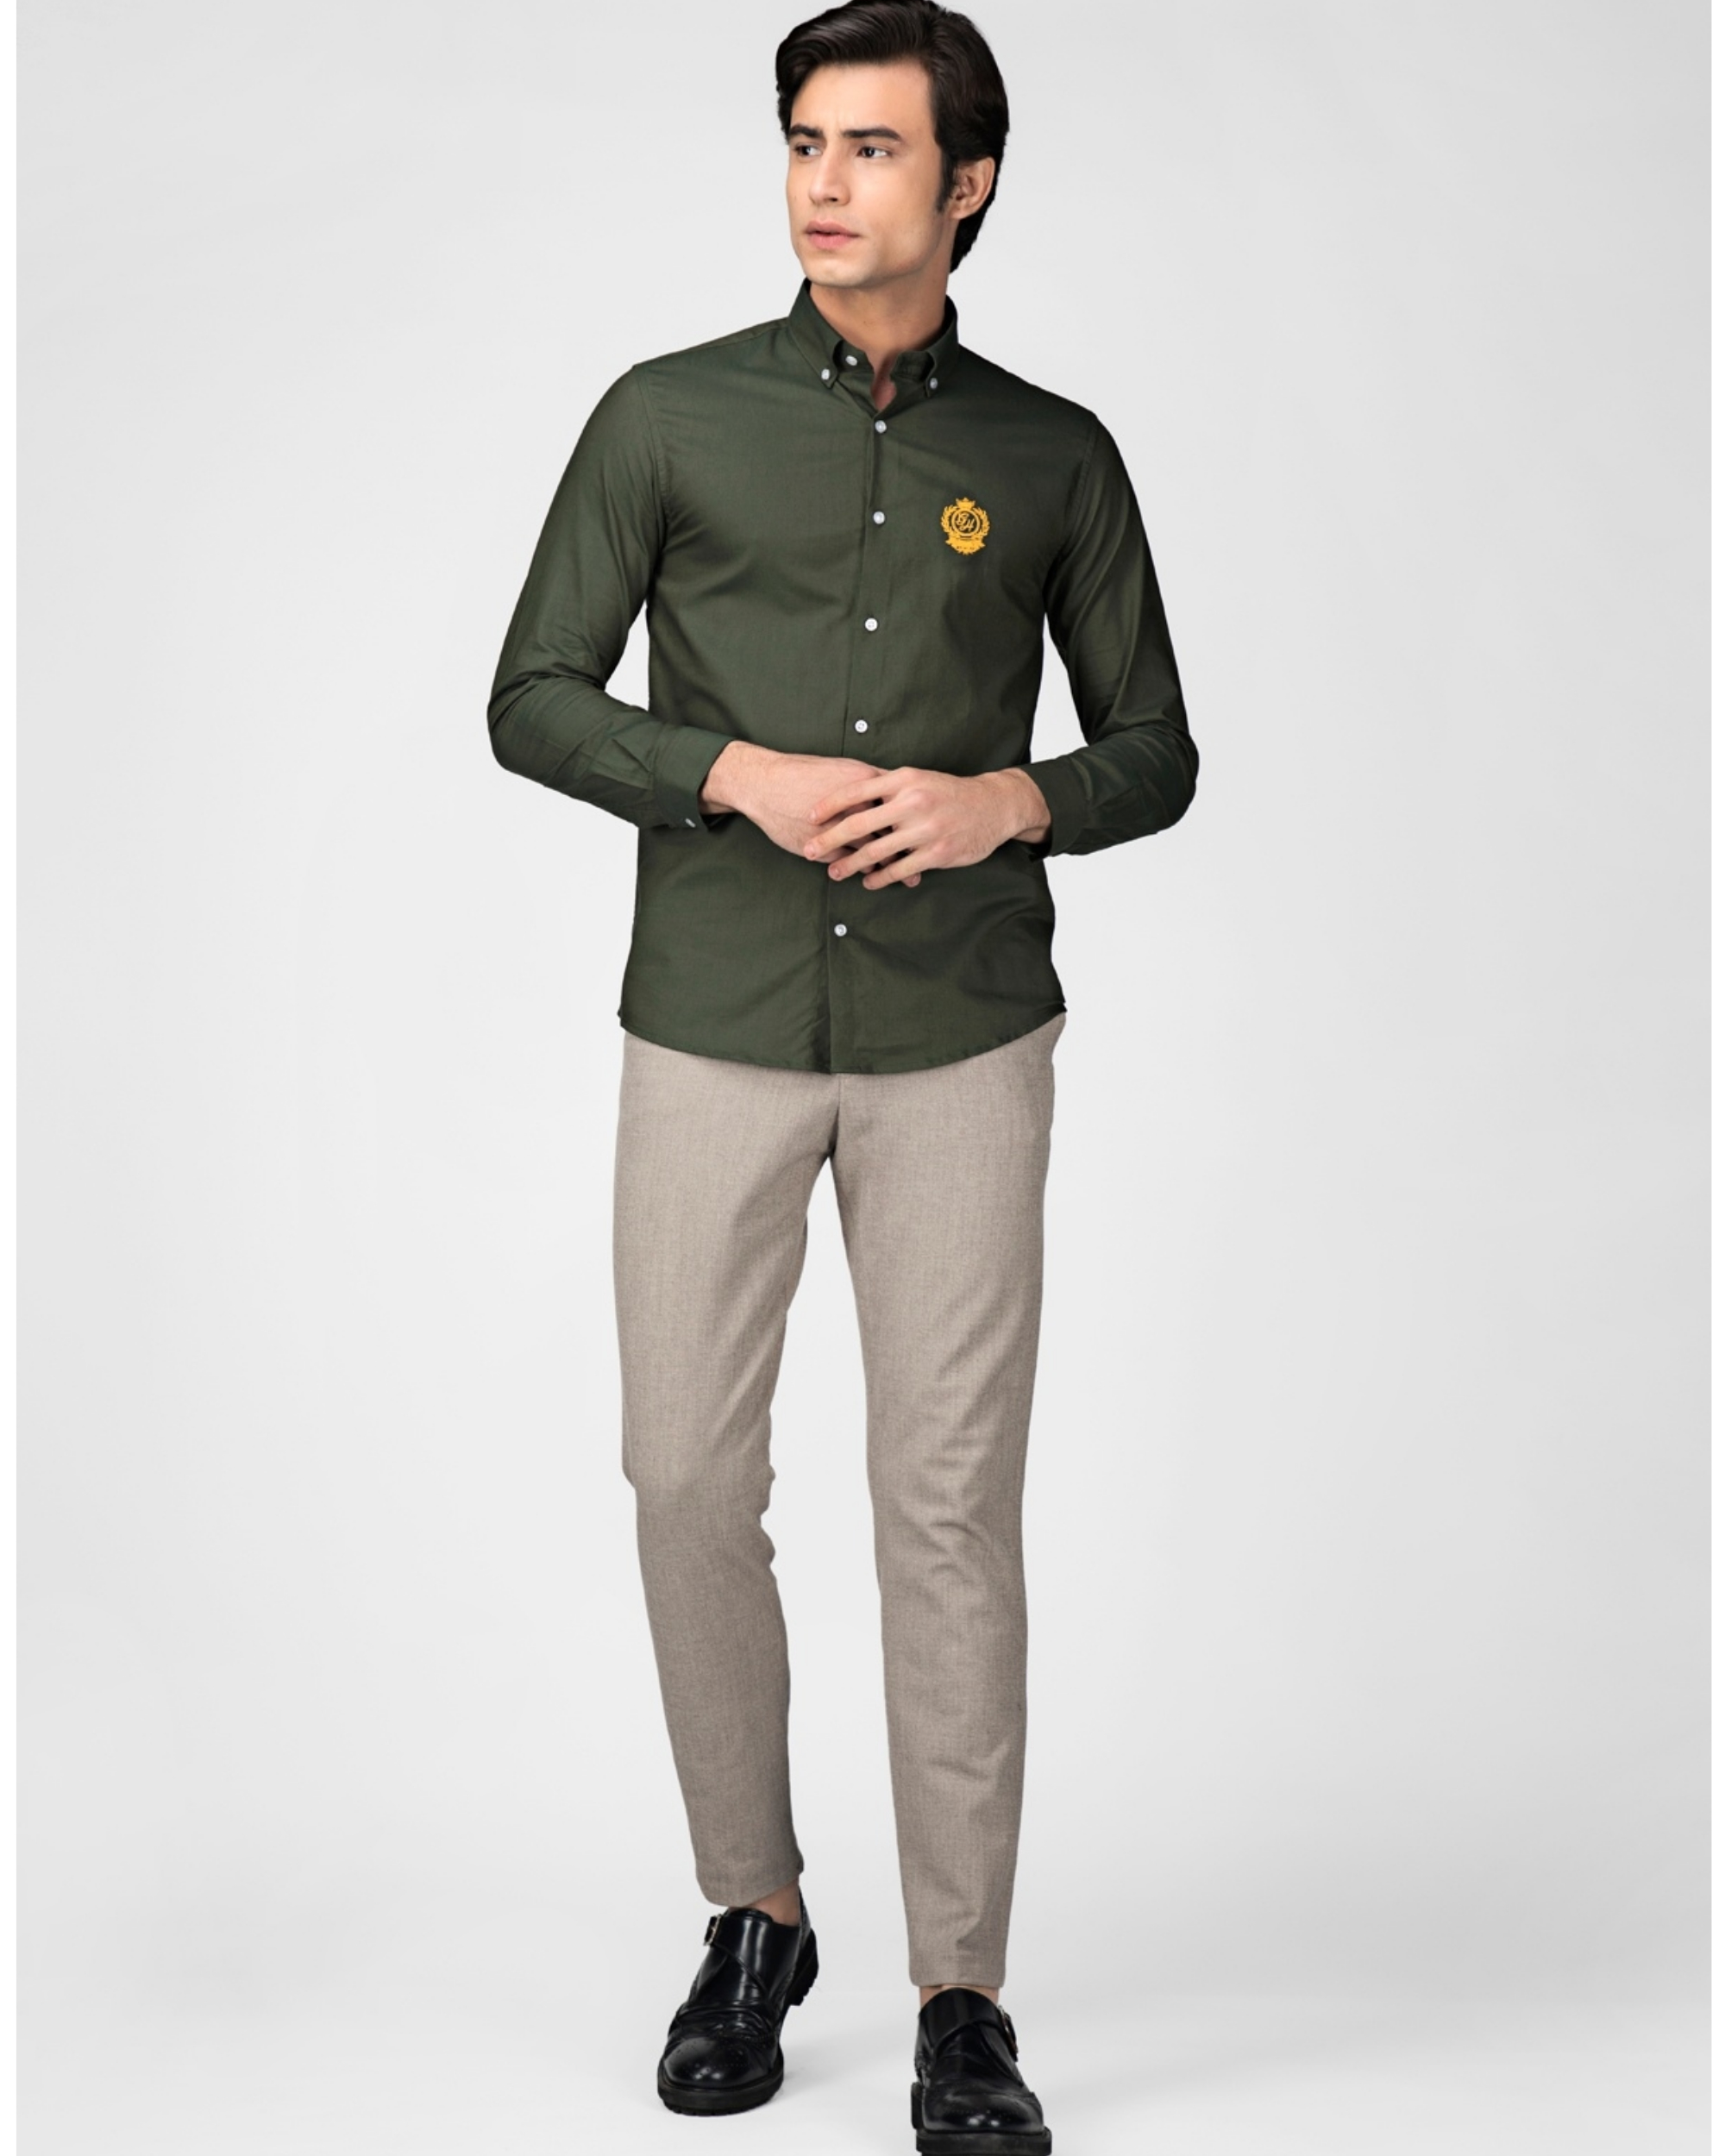 Olive green oxford embroidered shirt